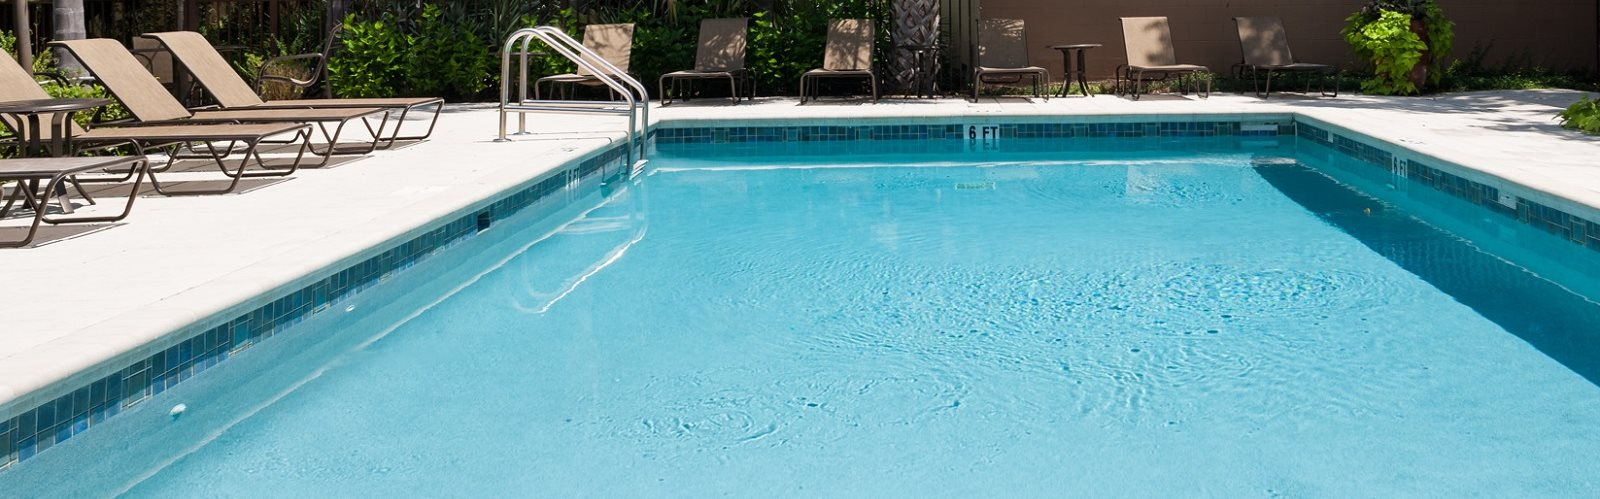 Pool Area at Green Oaks Apartments, Tampa, 33616